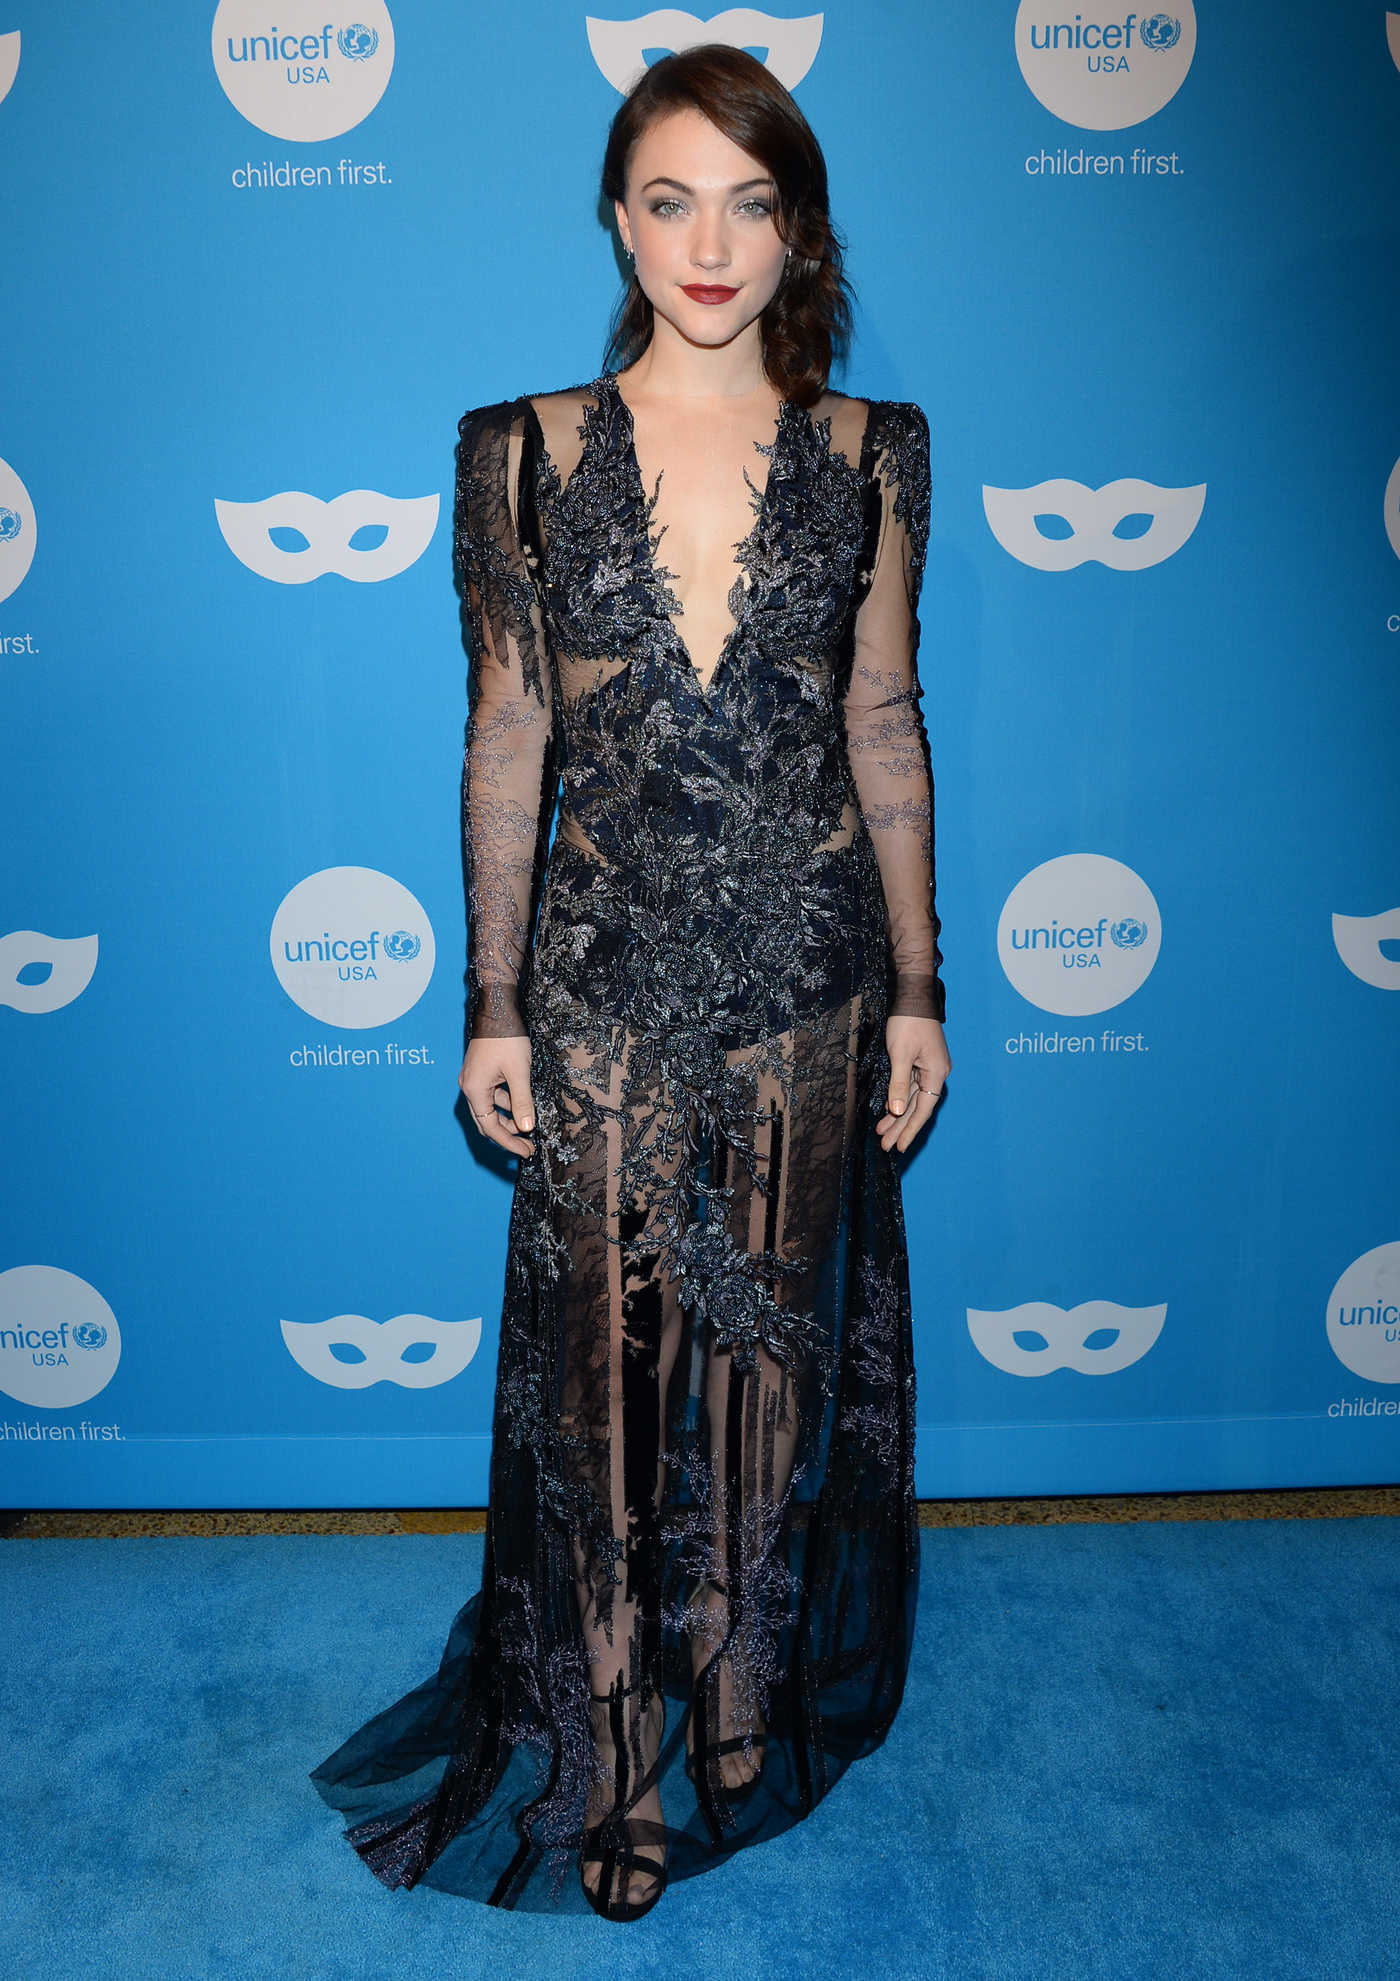 Violett Beane Attends the 6th Annual UNICEF Masquerade Ball in Los Angeles 10/25/2018